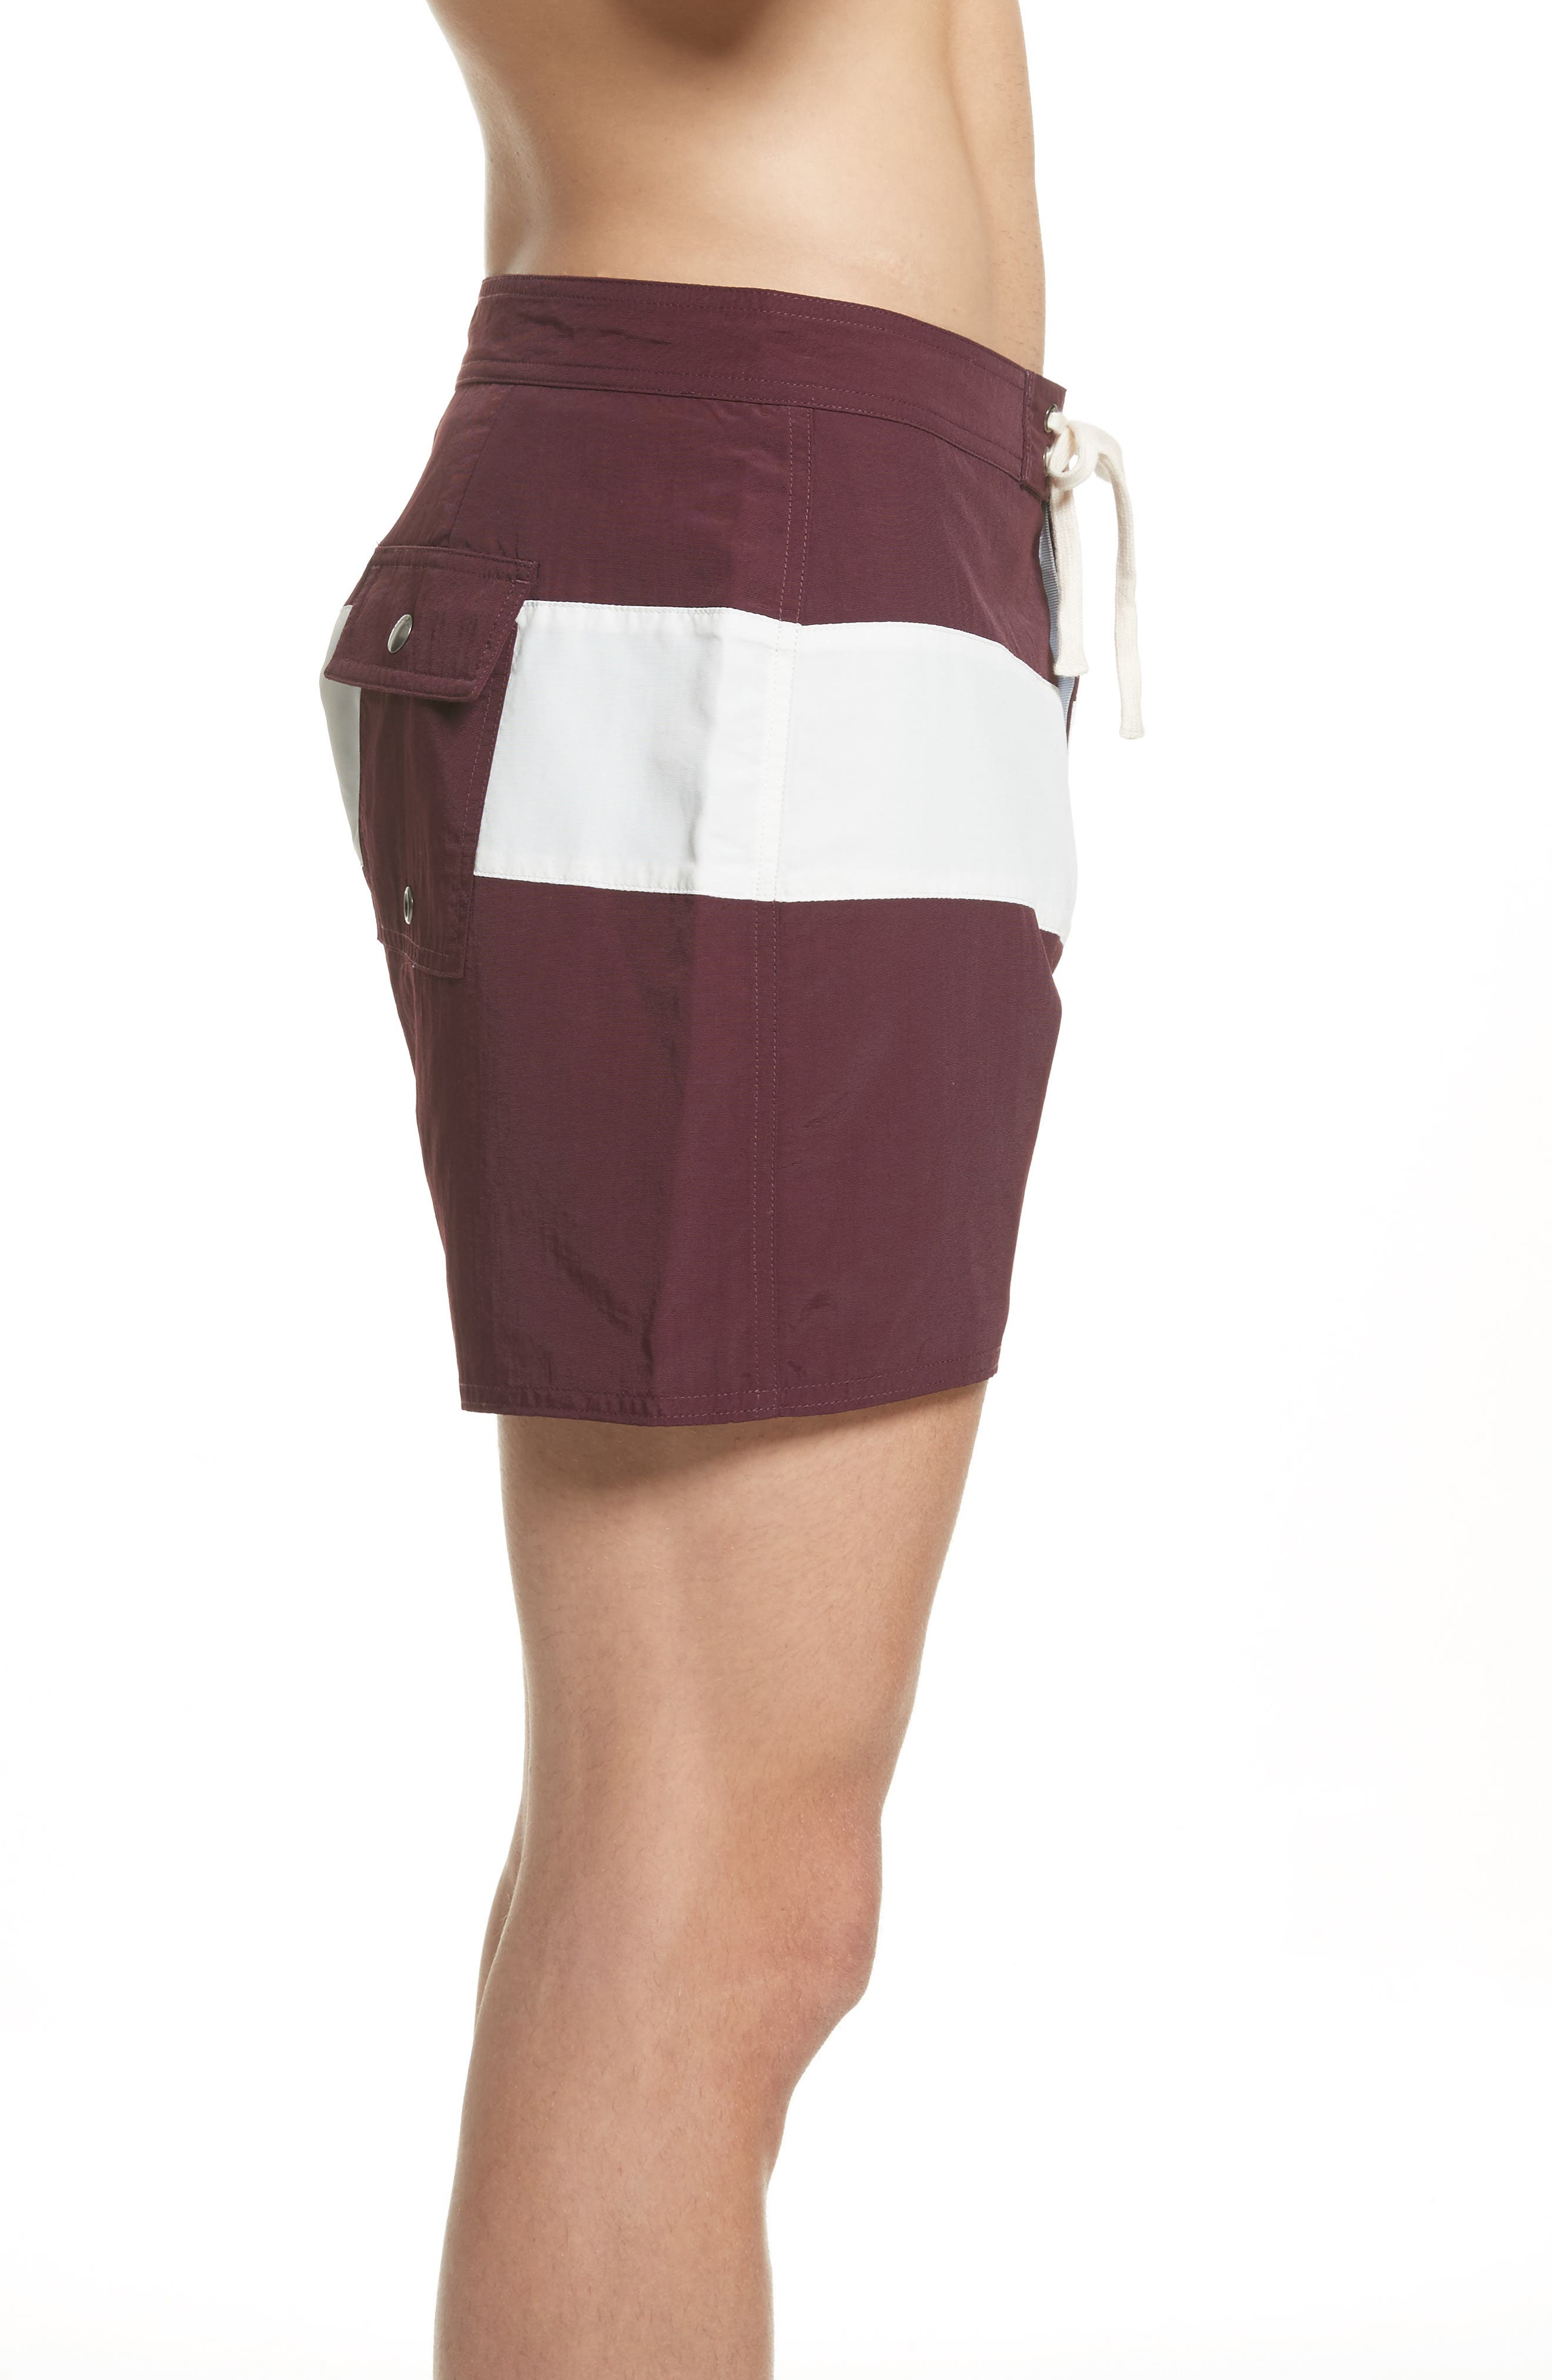 Grant Board Shorts,                             Alternate thumbnail 3, color,                             Dark Mauve/Ivory